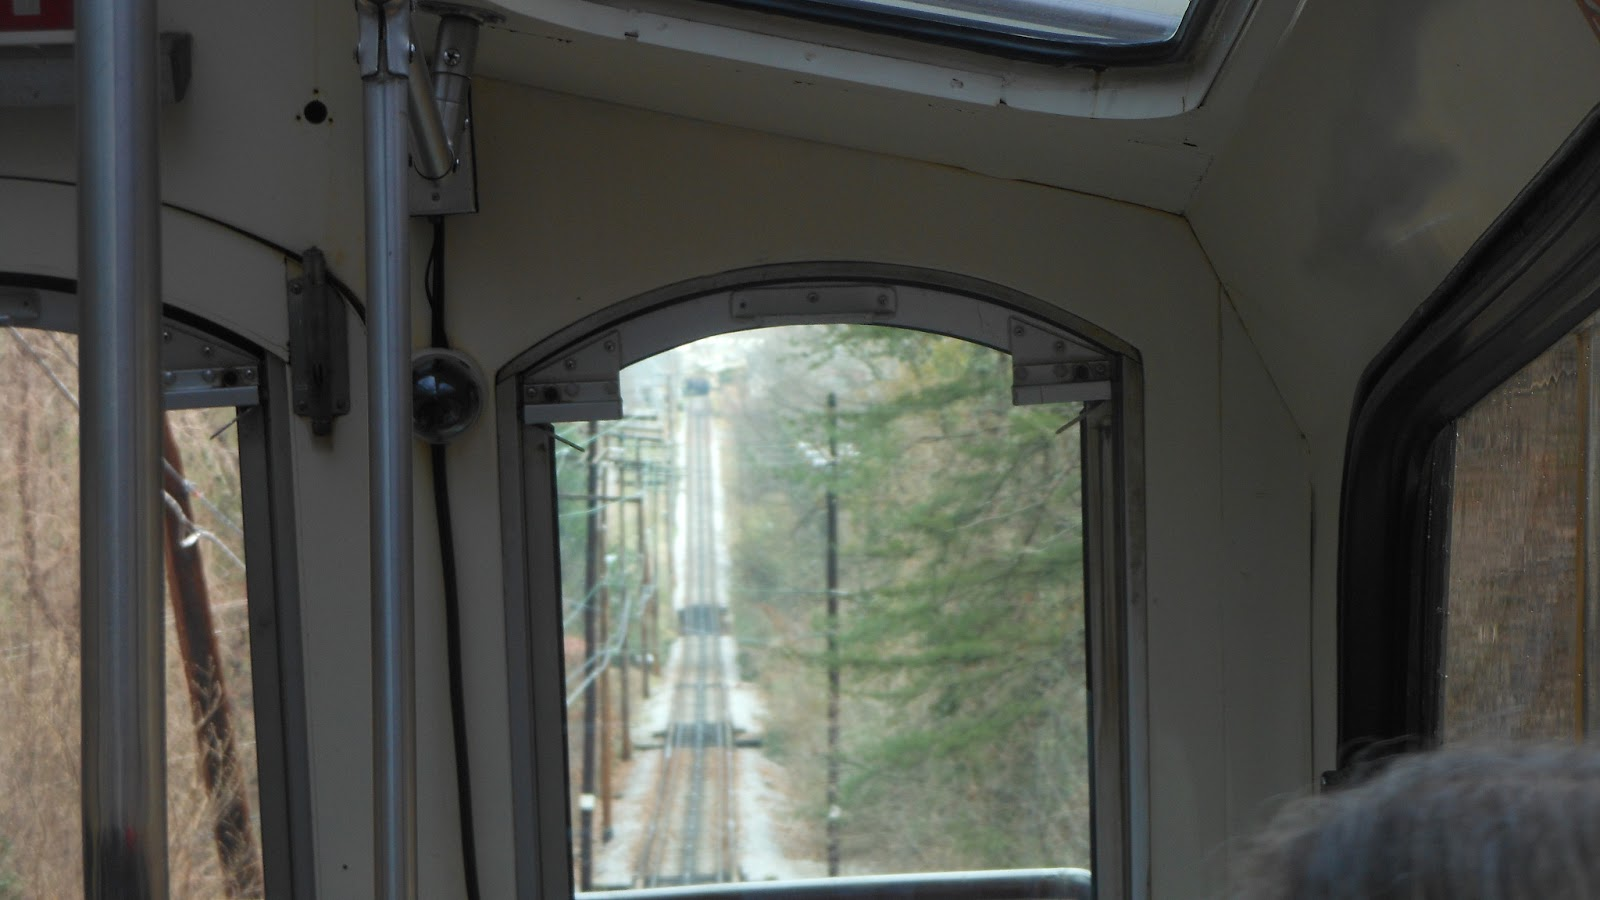 view of the incline railway track